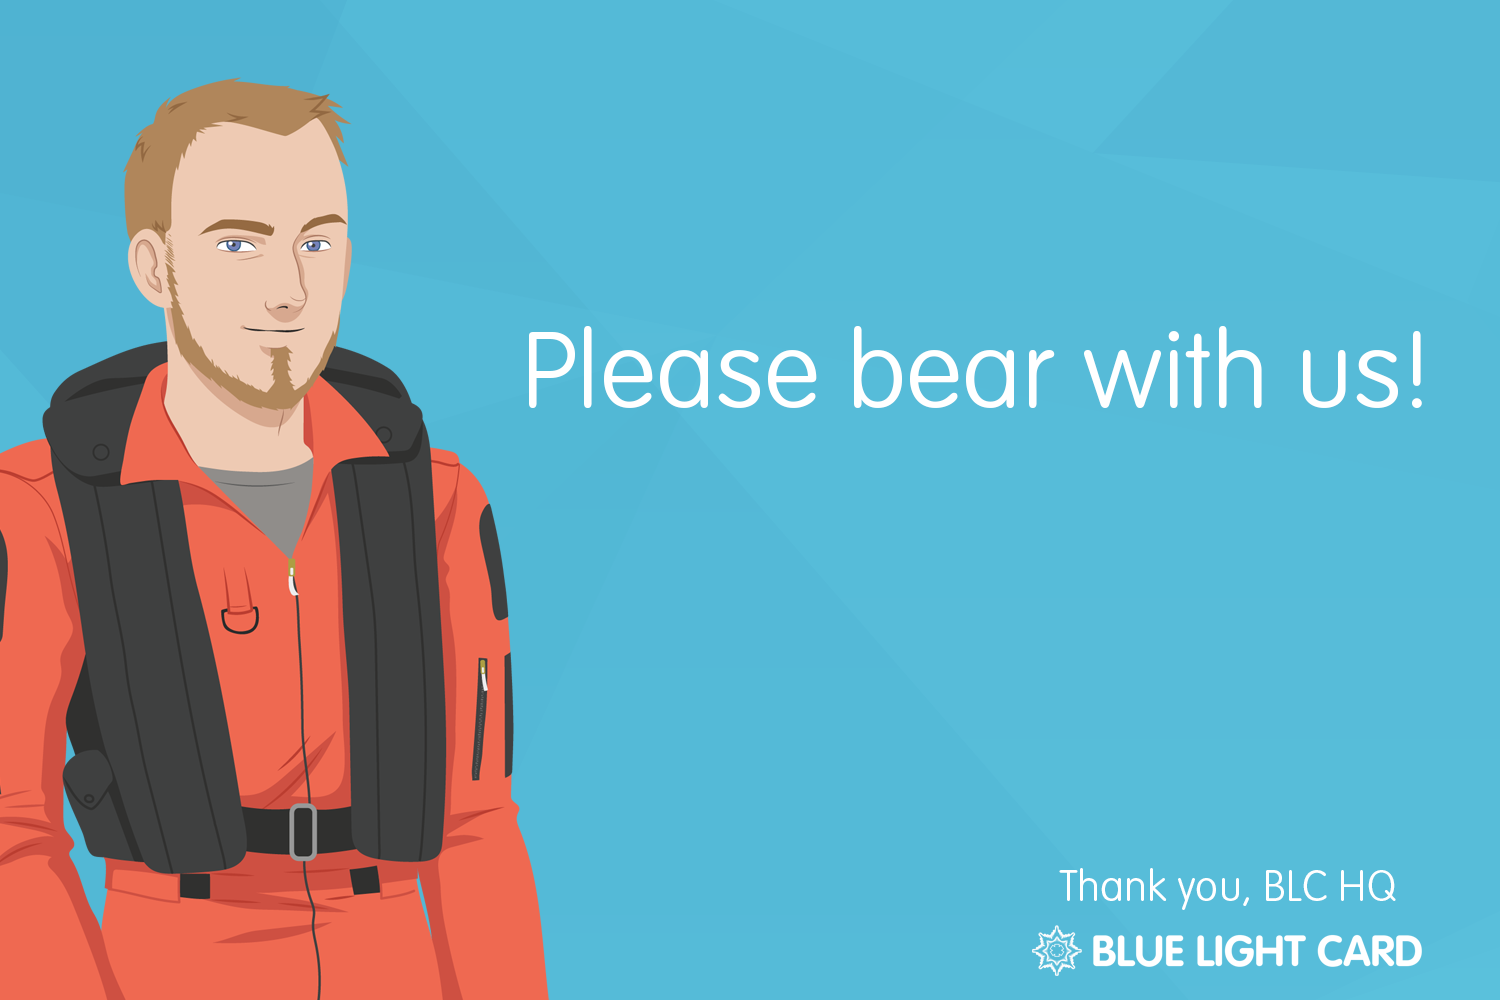 Please bear with us!